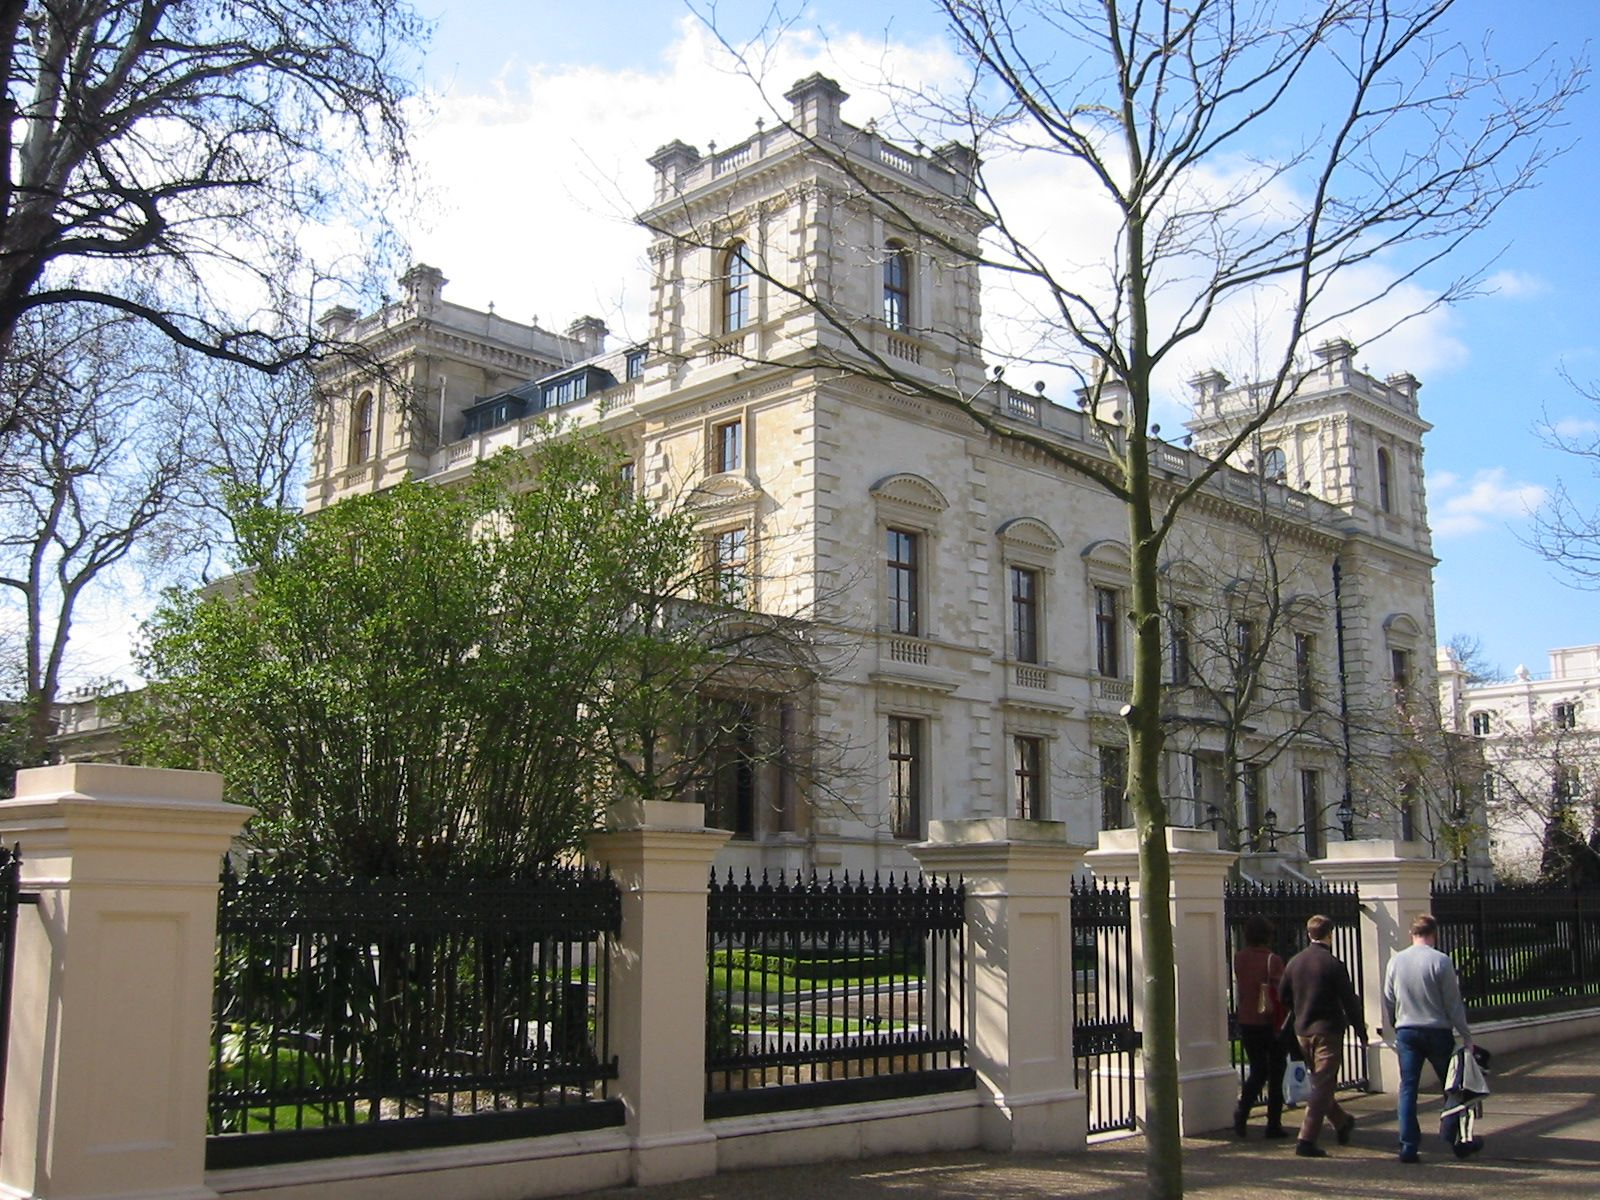 Perfect 18 Kensington Palace Gardens Belongs To Indian Steel Tycoon Lakshmi Mittal,  Who Bought It From Bernie Ecclestone. Previous Owners Also Include Baron De  ... Part 25